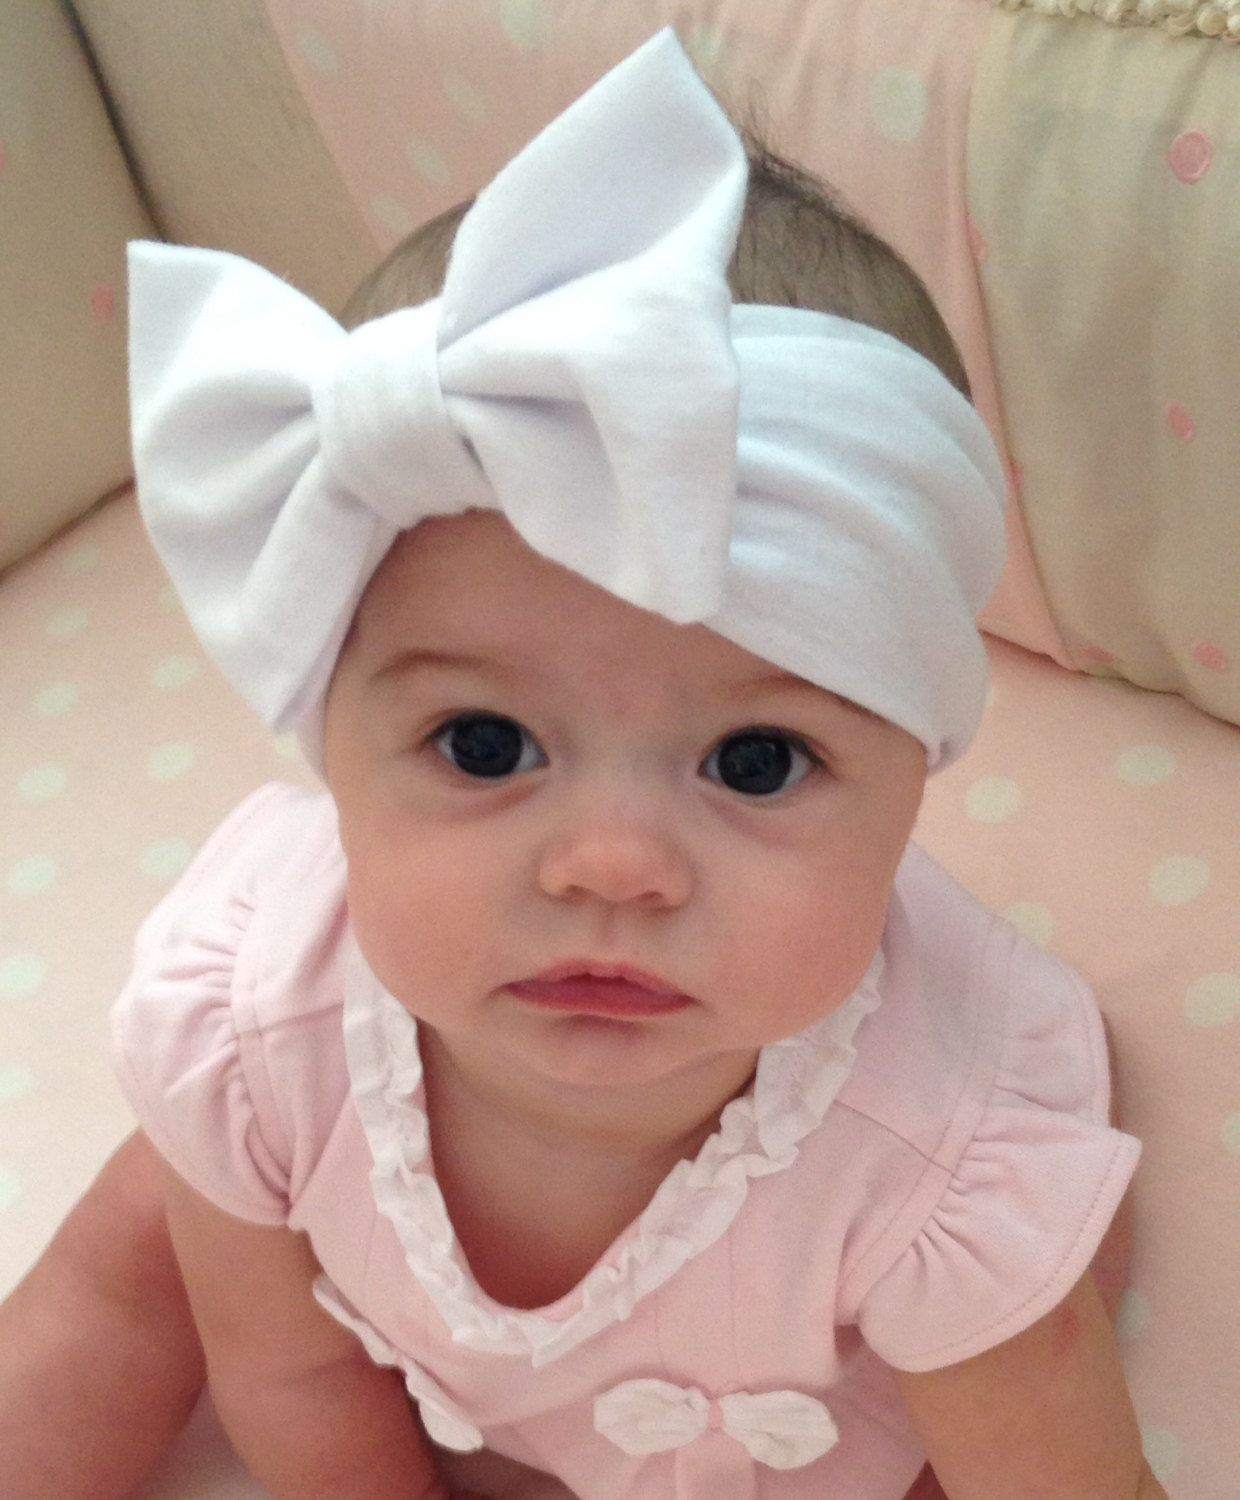 27b3fa1bd59 ... Toddler Headband - baby gift. White Bow Baby Headwrap by  QueenysTeenyBowtique on Etsy